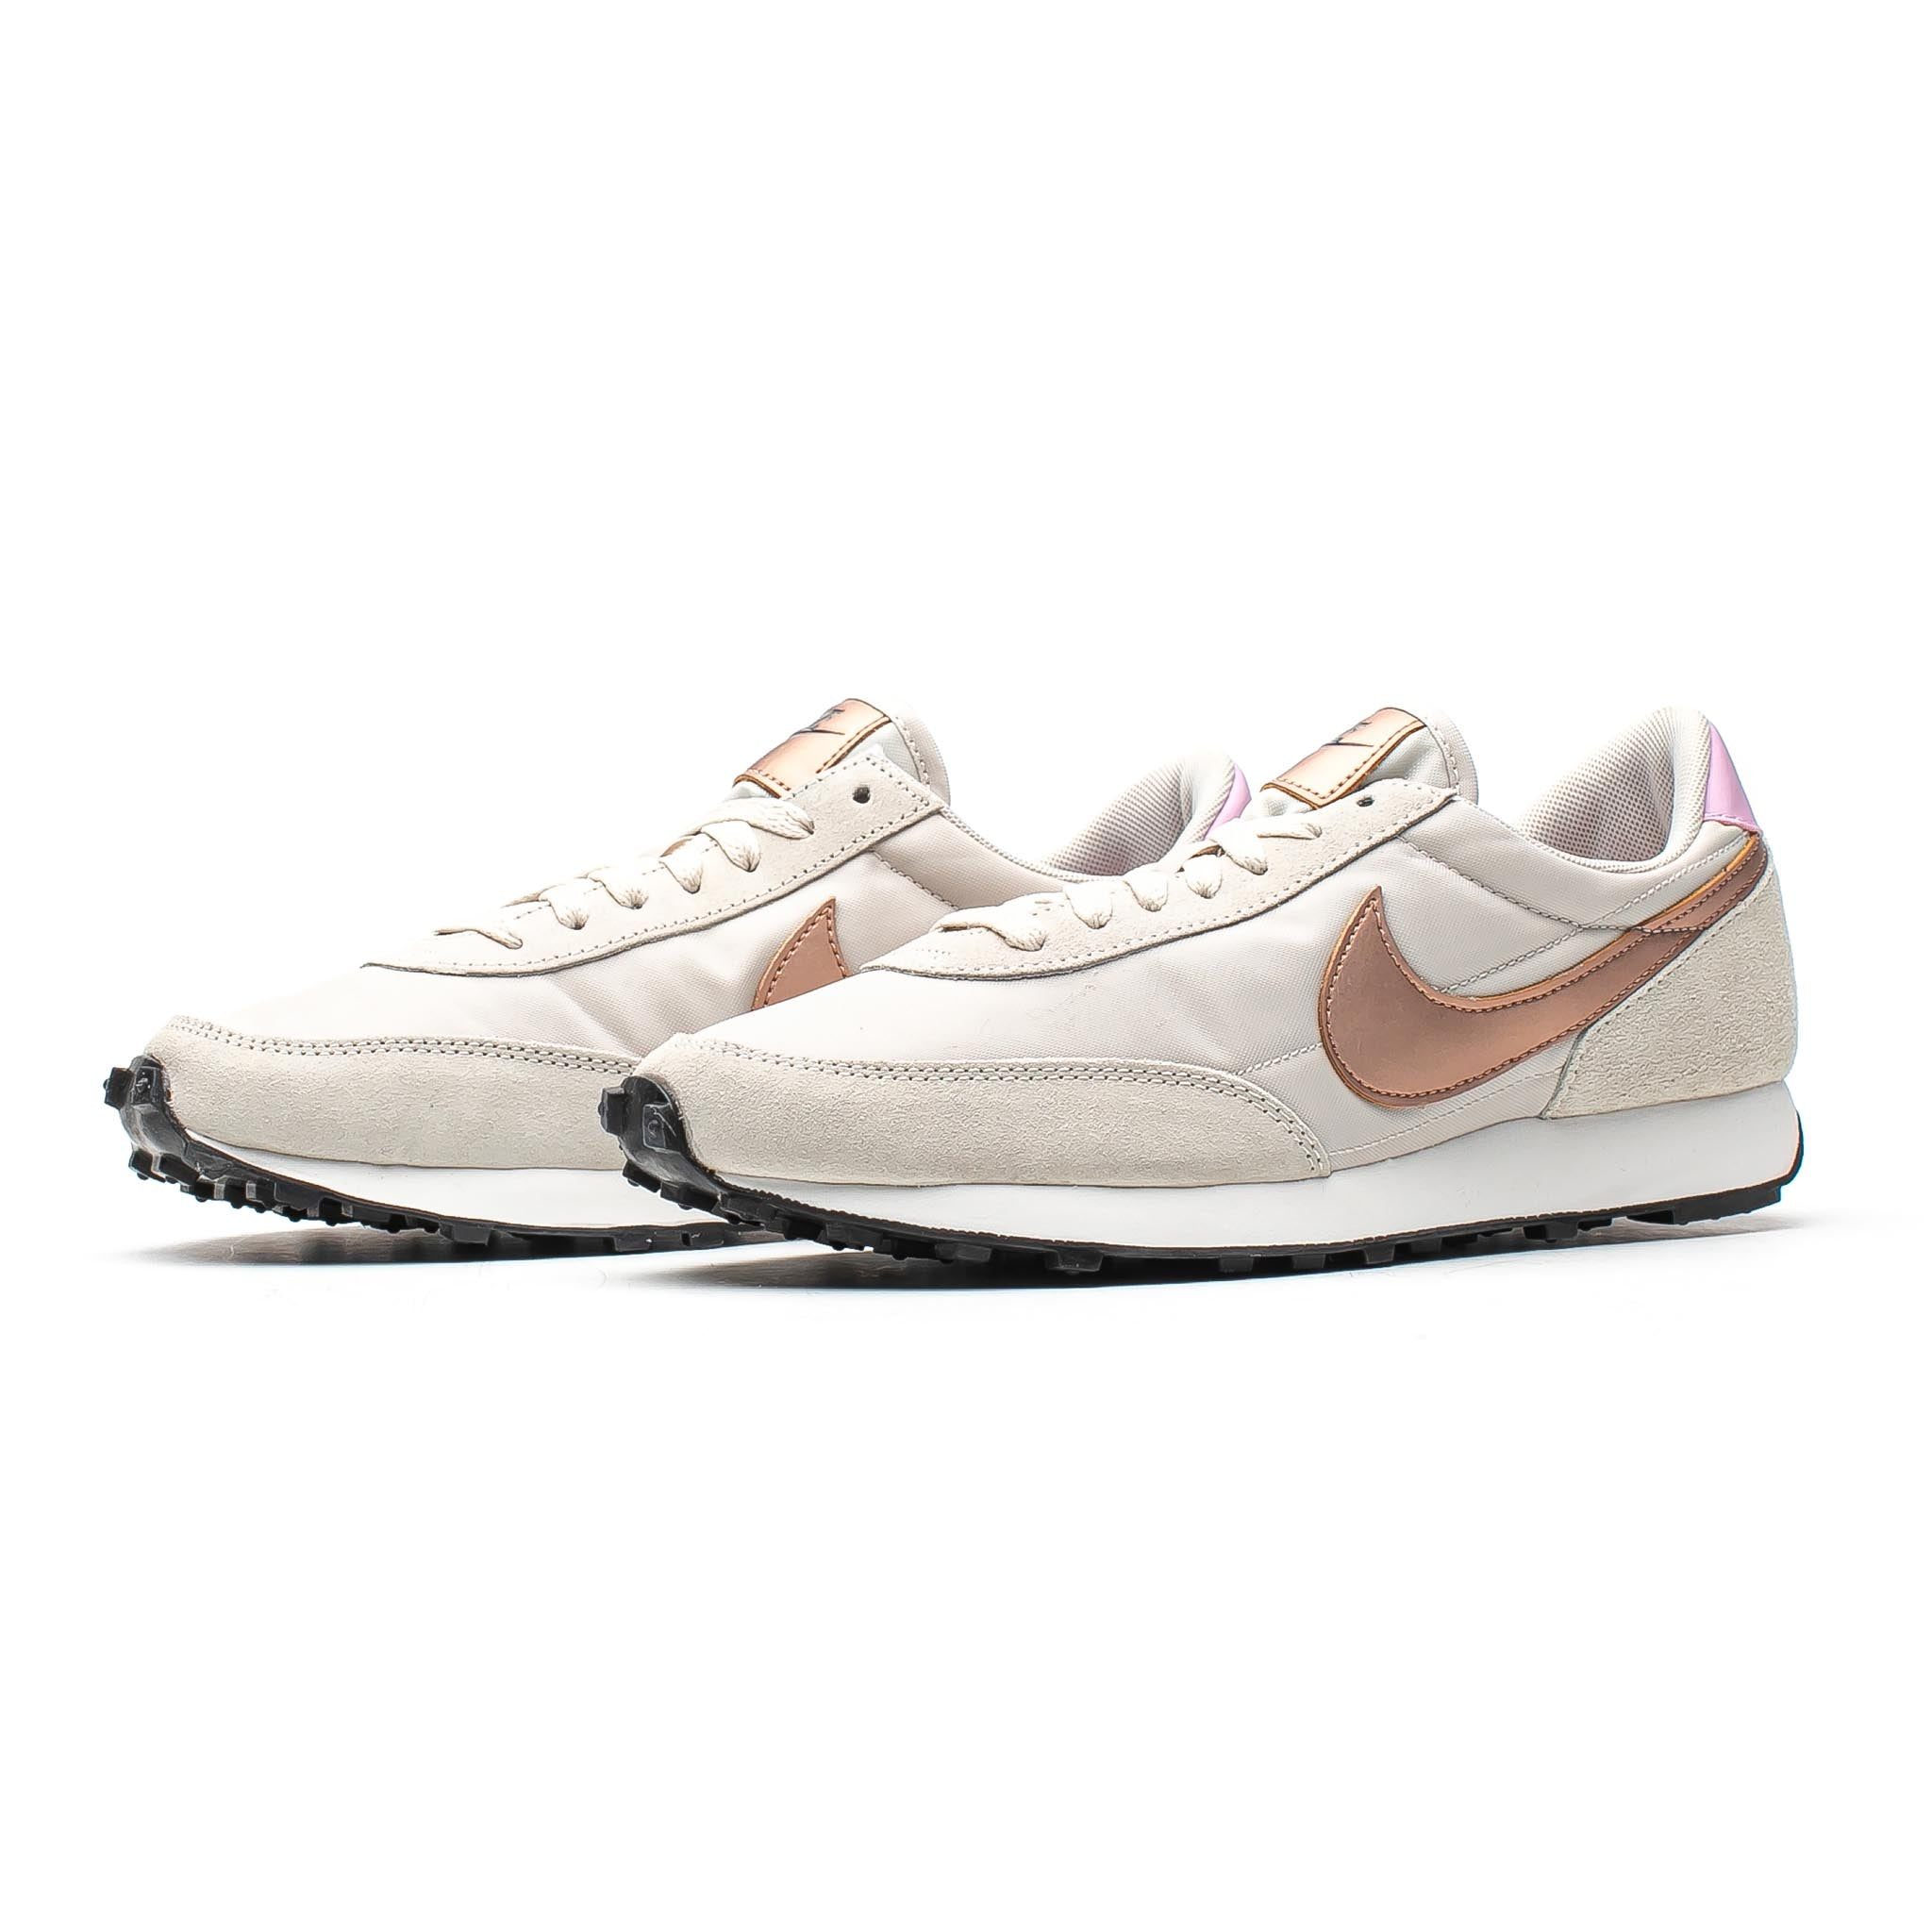 Nike Daybreak RTL 'Light Orewood/Rose Gold'